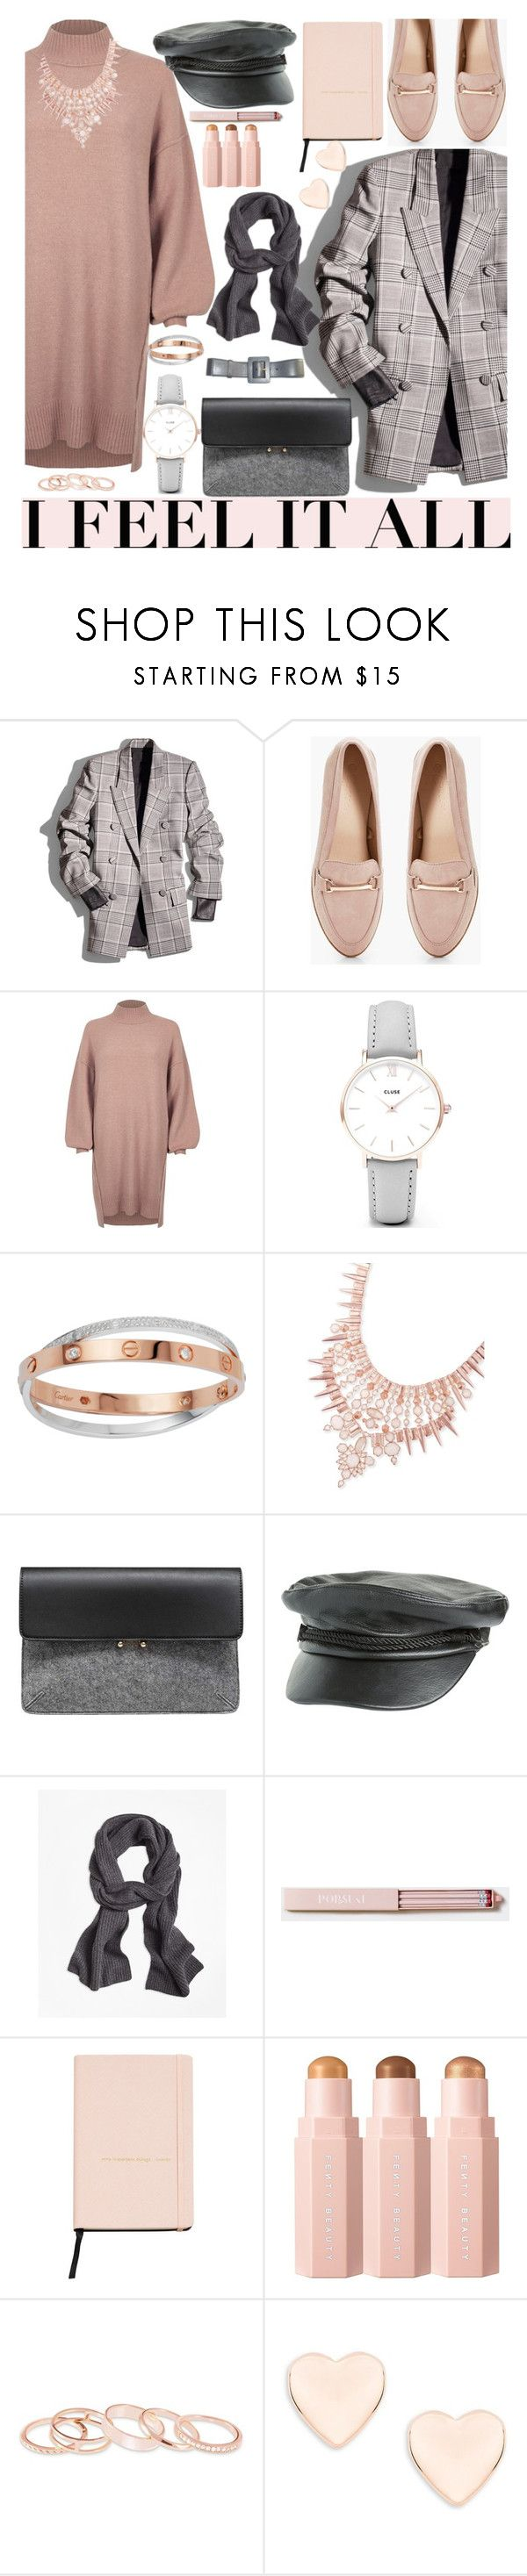 """""""1 Thessalonians 5:17"""" by mira-j ❤ liked on Polyvore featuring Alexander Wang, Boohoo, River Island, CLUSE, Kendra Scott, MANGO, Volcom, Brooks Brothers, Ted Baker and Yves Saint Laurent"""